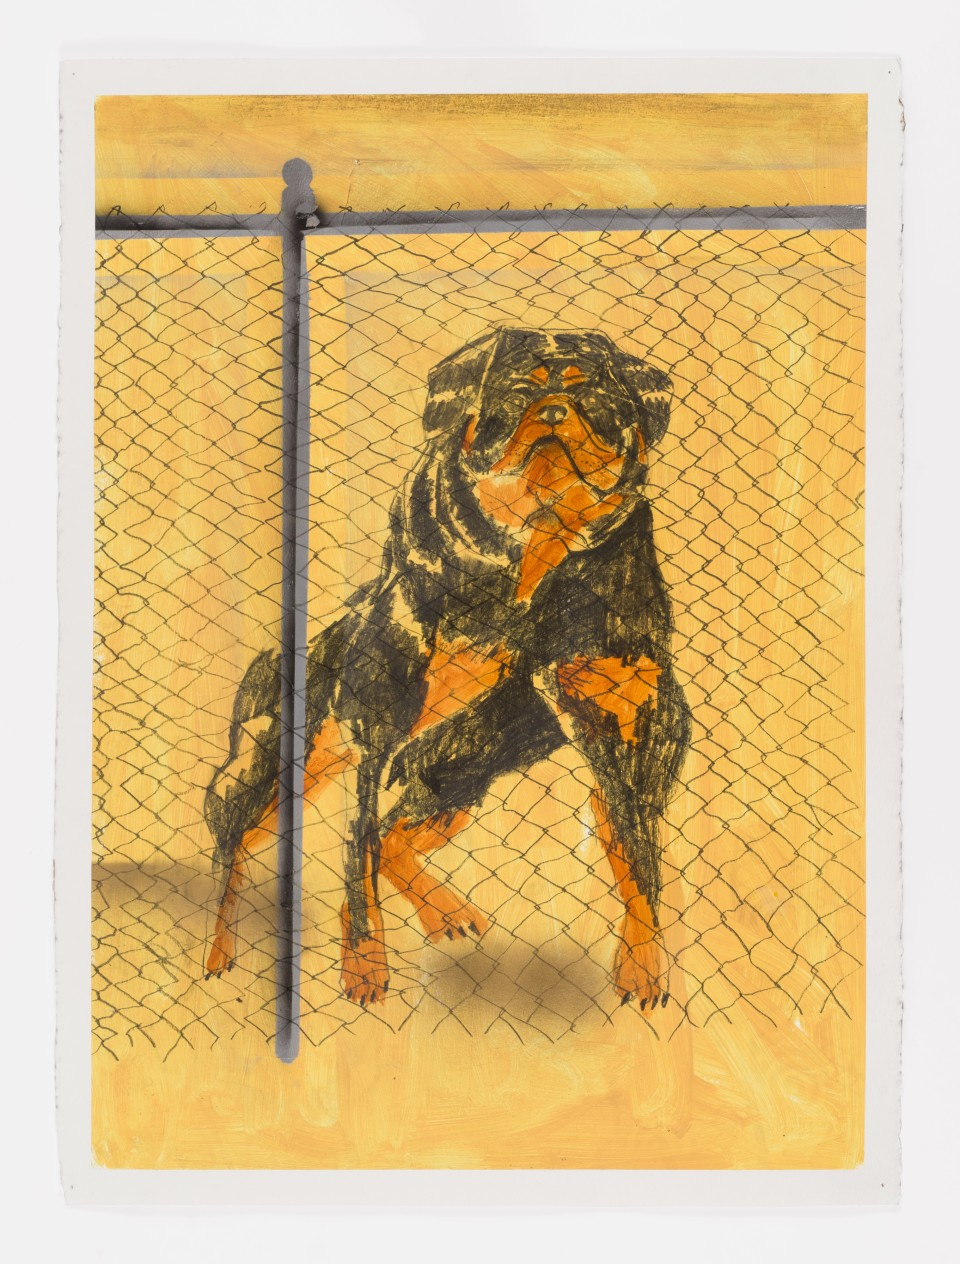 Image: Pat Phillips  Untitled (Rottweiler), 2019  signed and dated verso  acrylic, pencil, airbrush aerosol paint on paper  30 x 22 inches (76.2 x 55.9 cm)